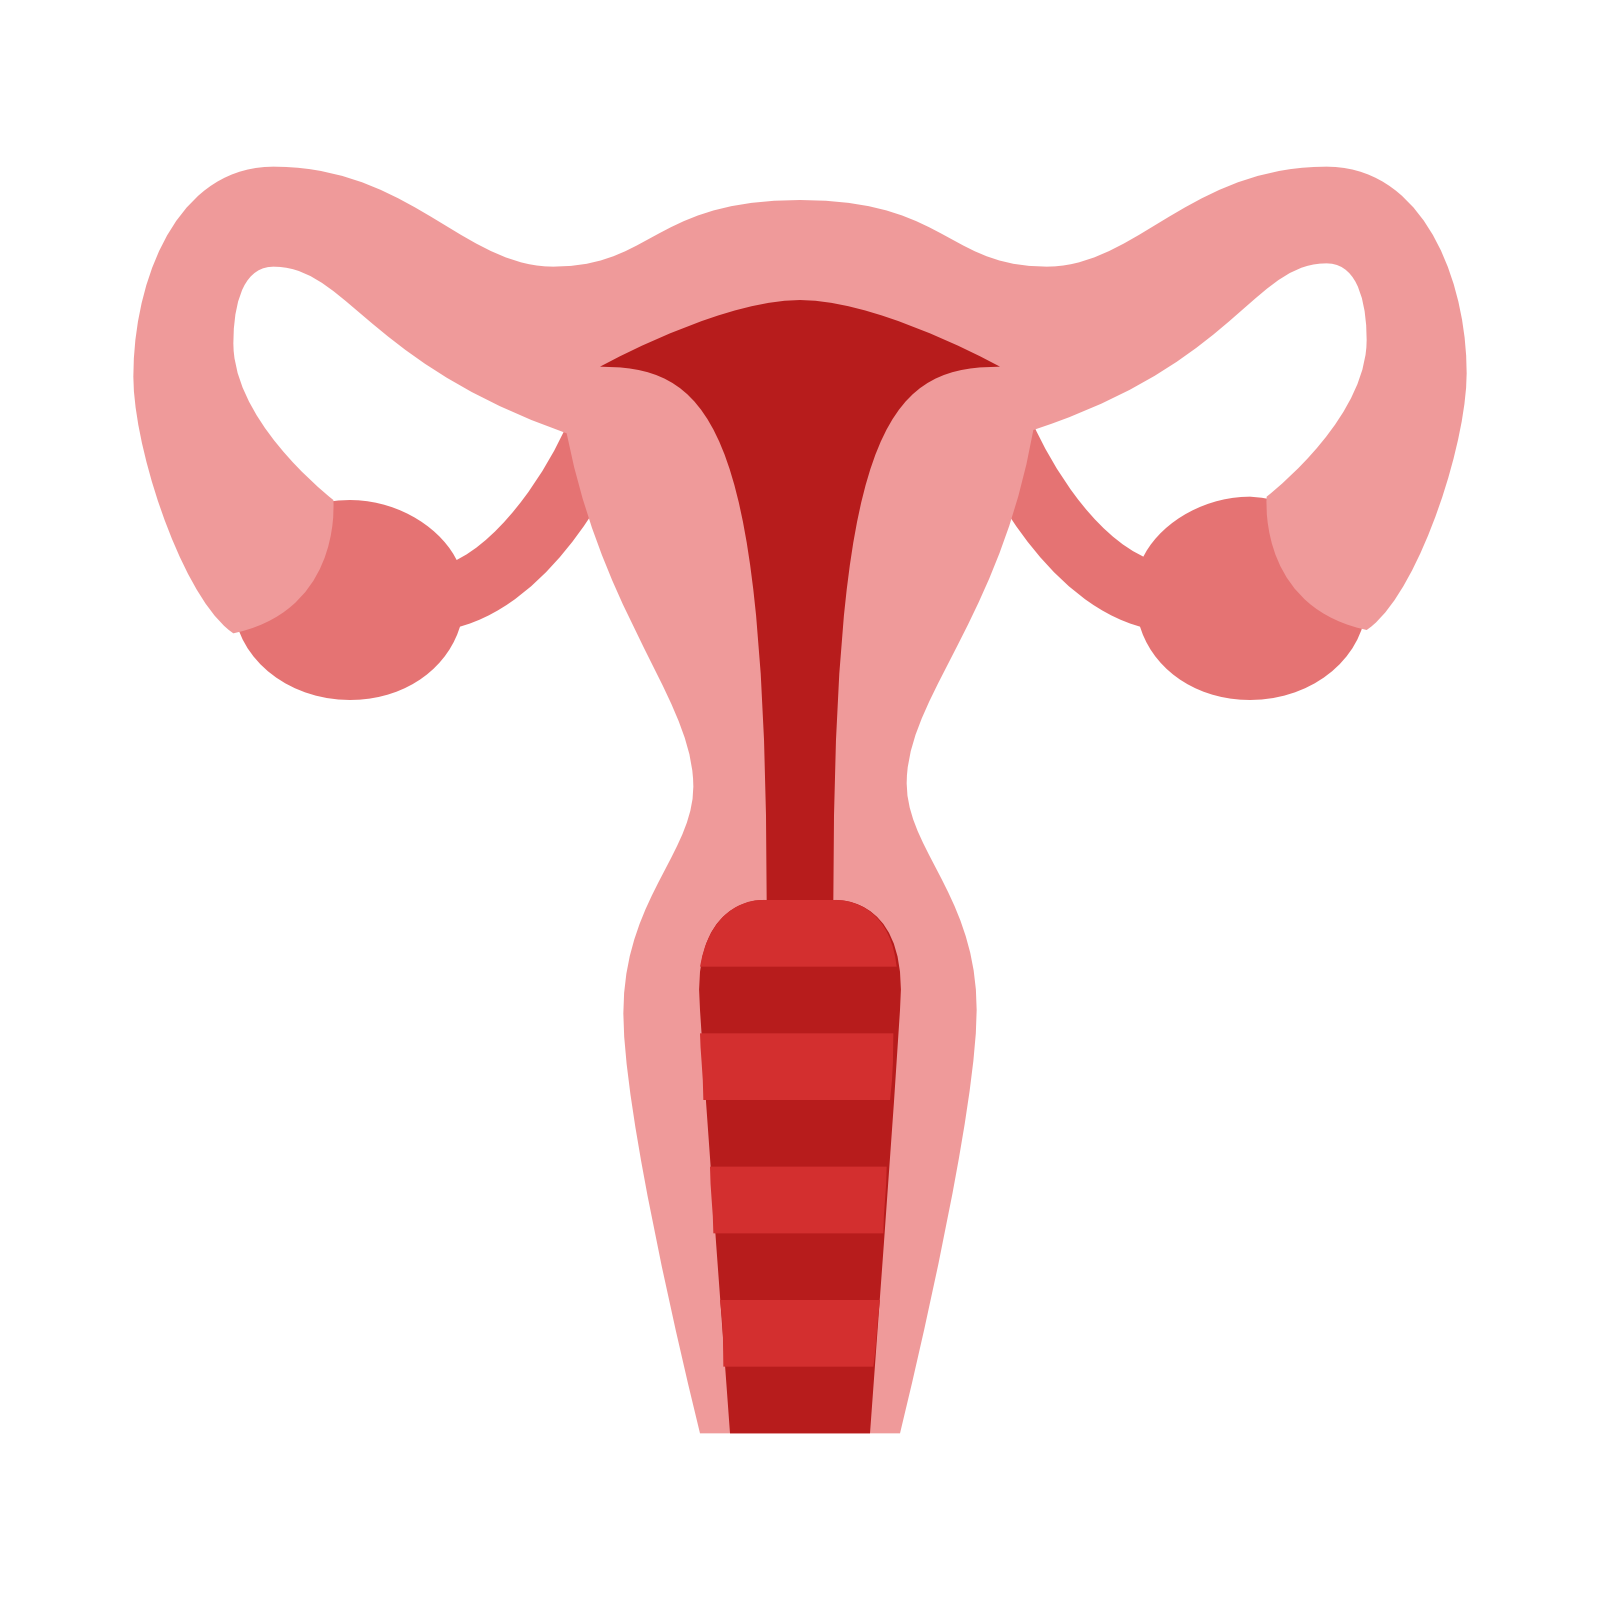 Womb clipart embryo At Uterus icon Icons8 Download